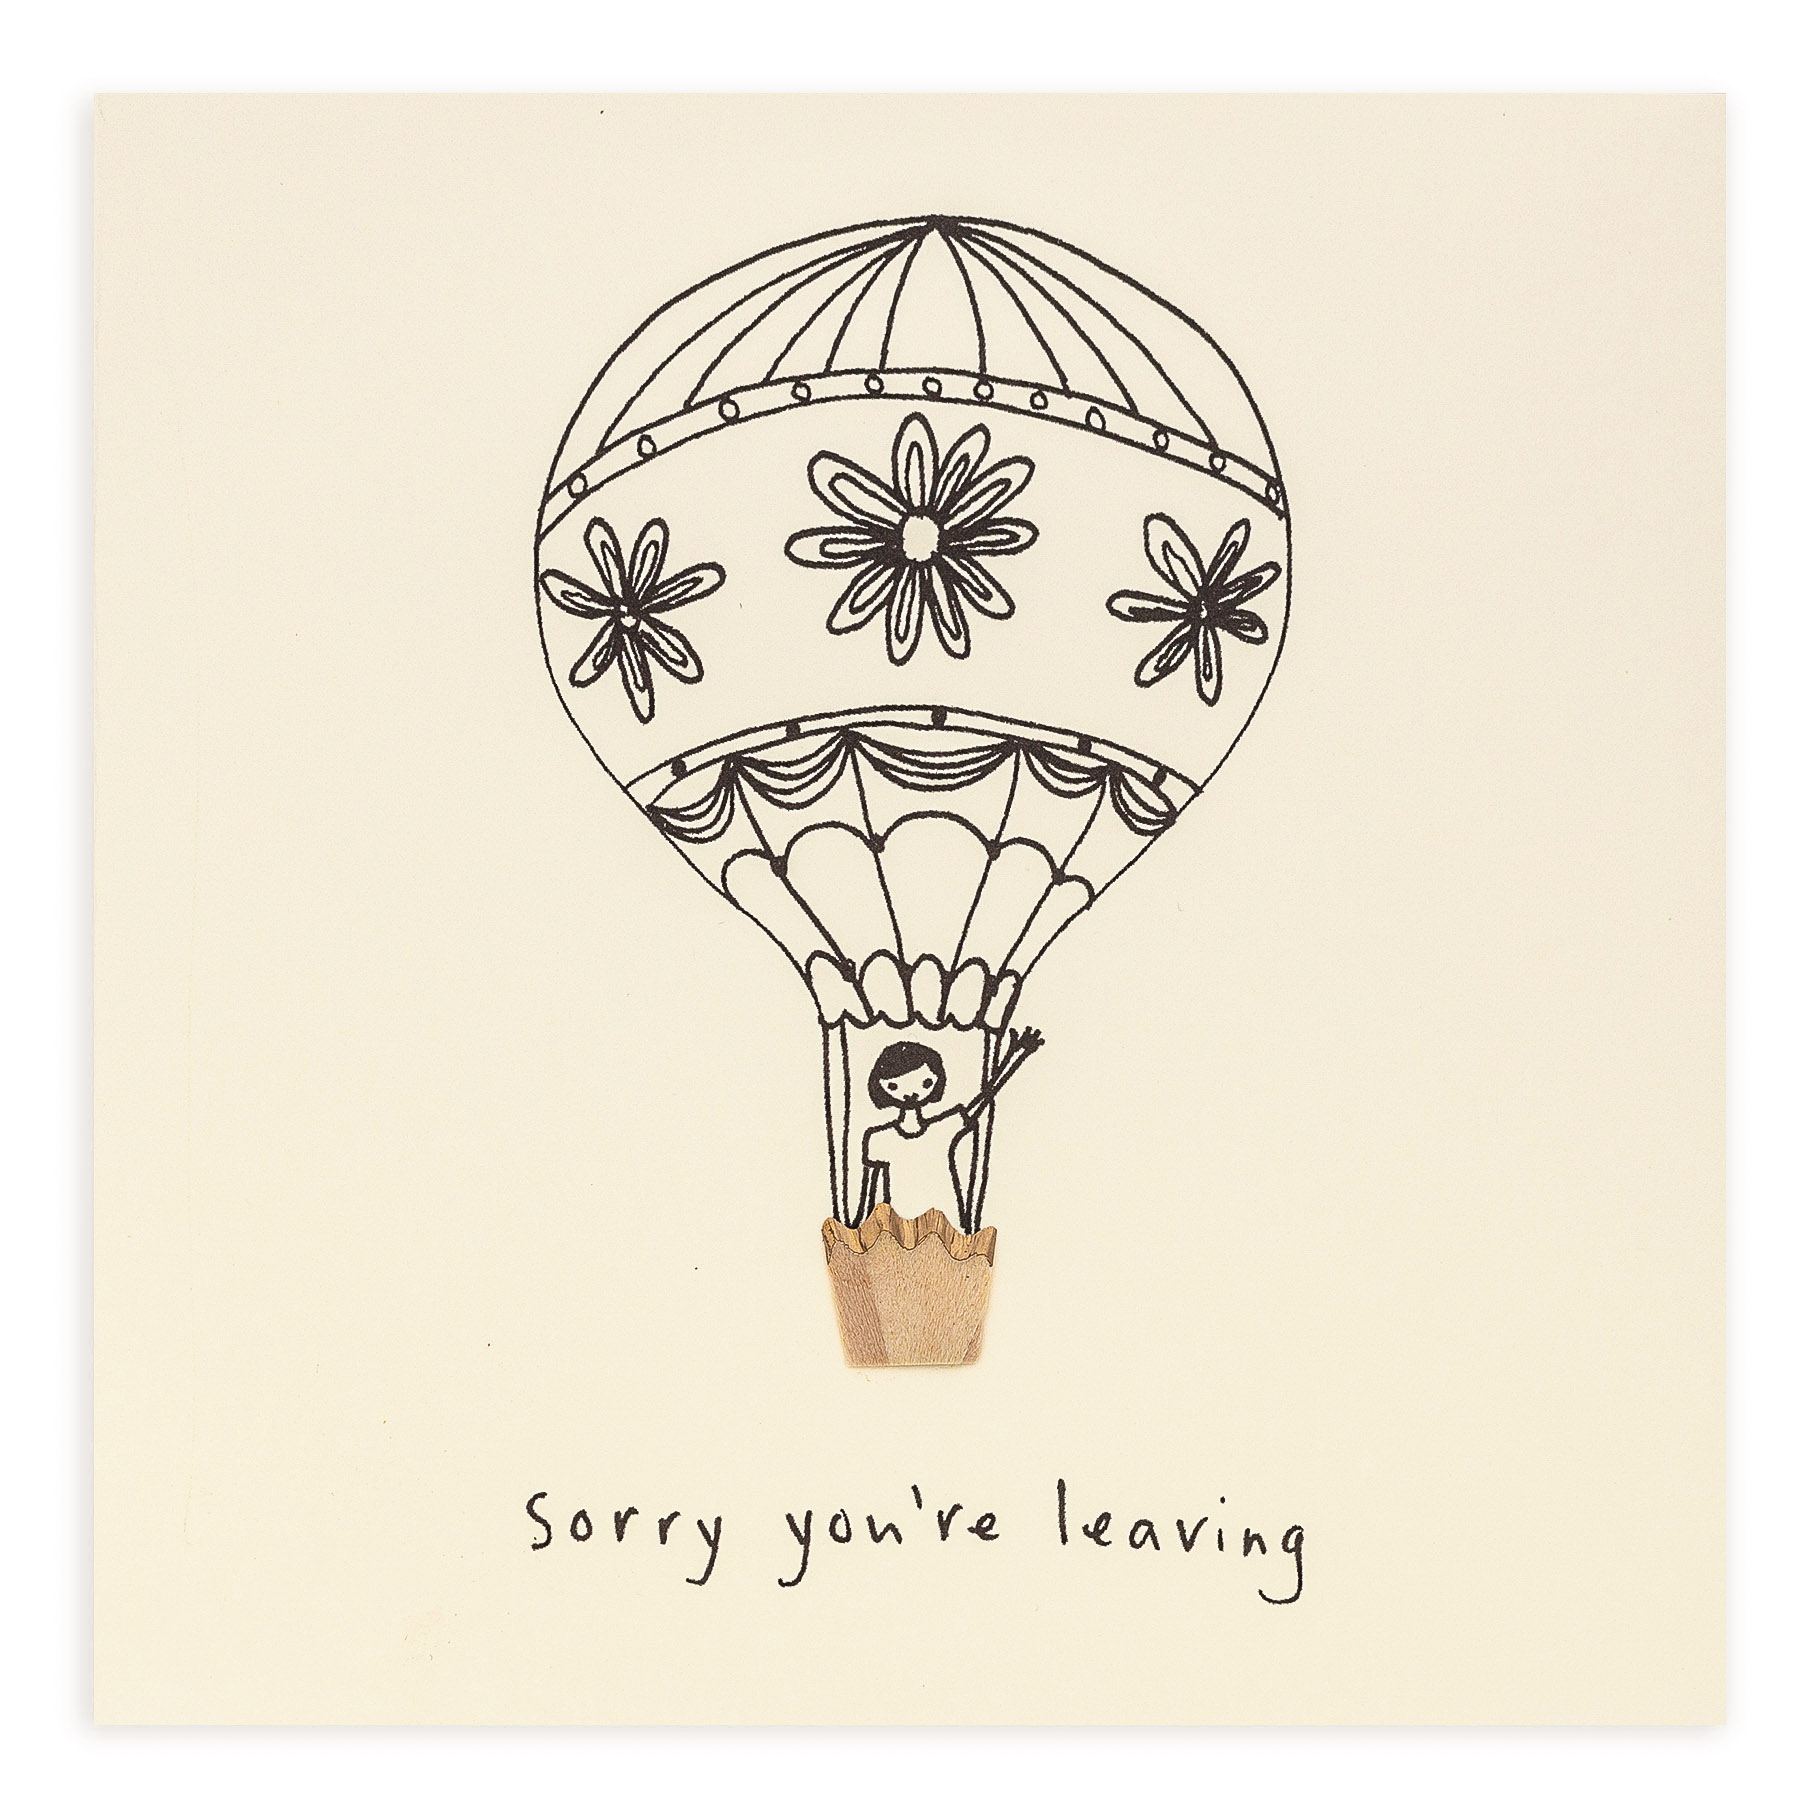 Sorry leaving by ruth jackson